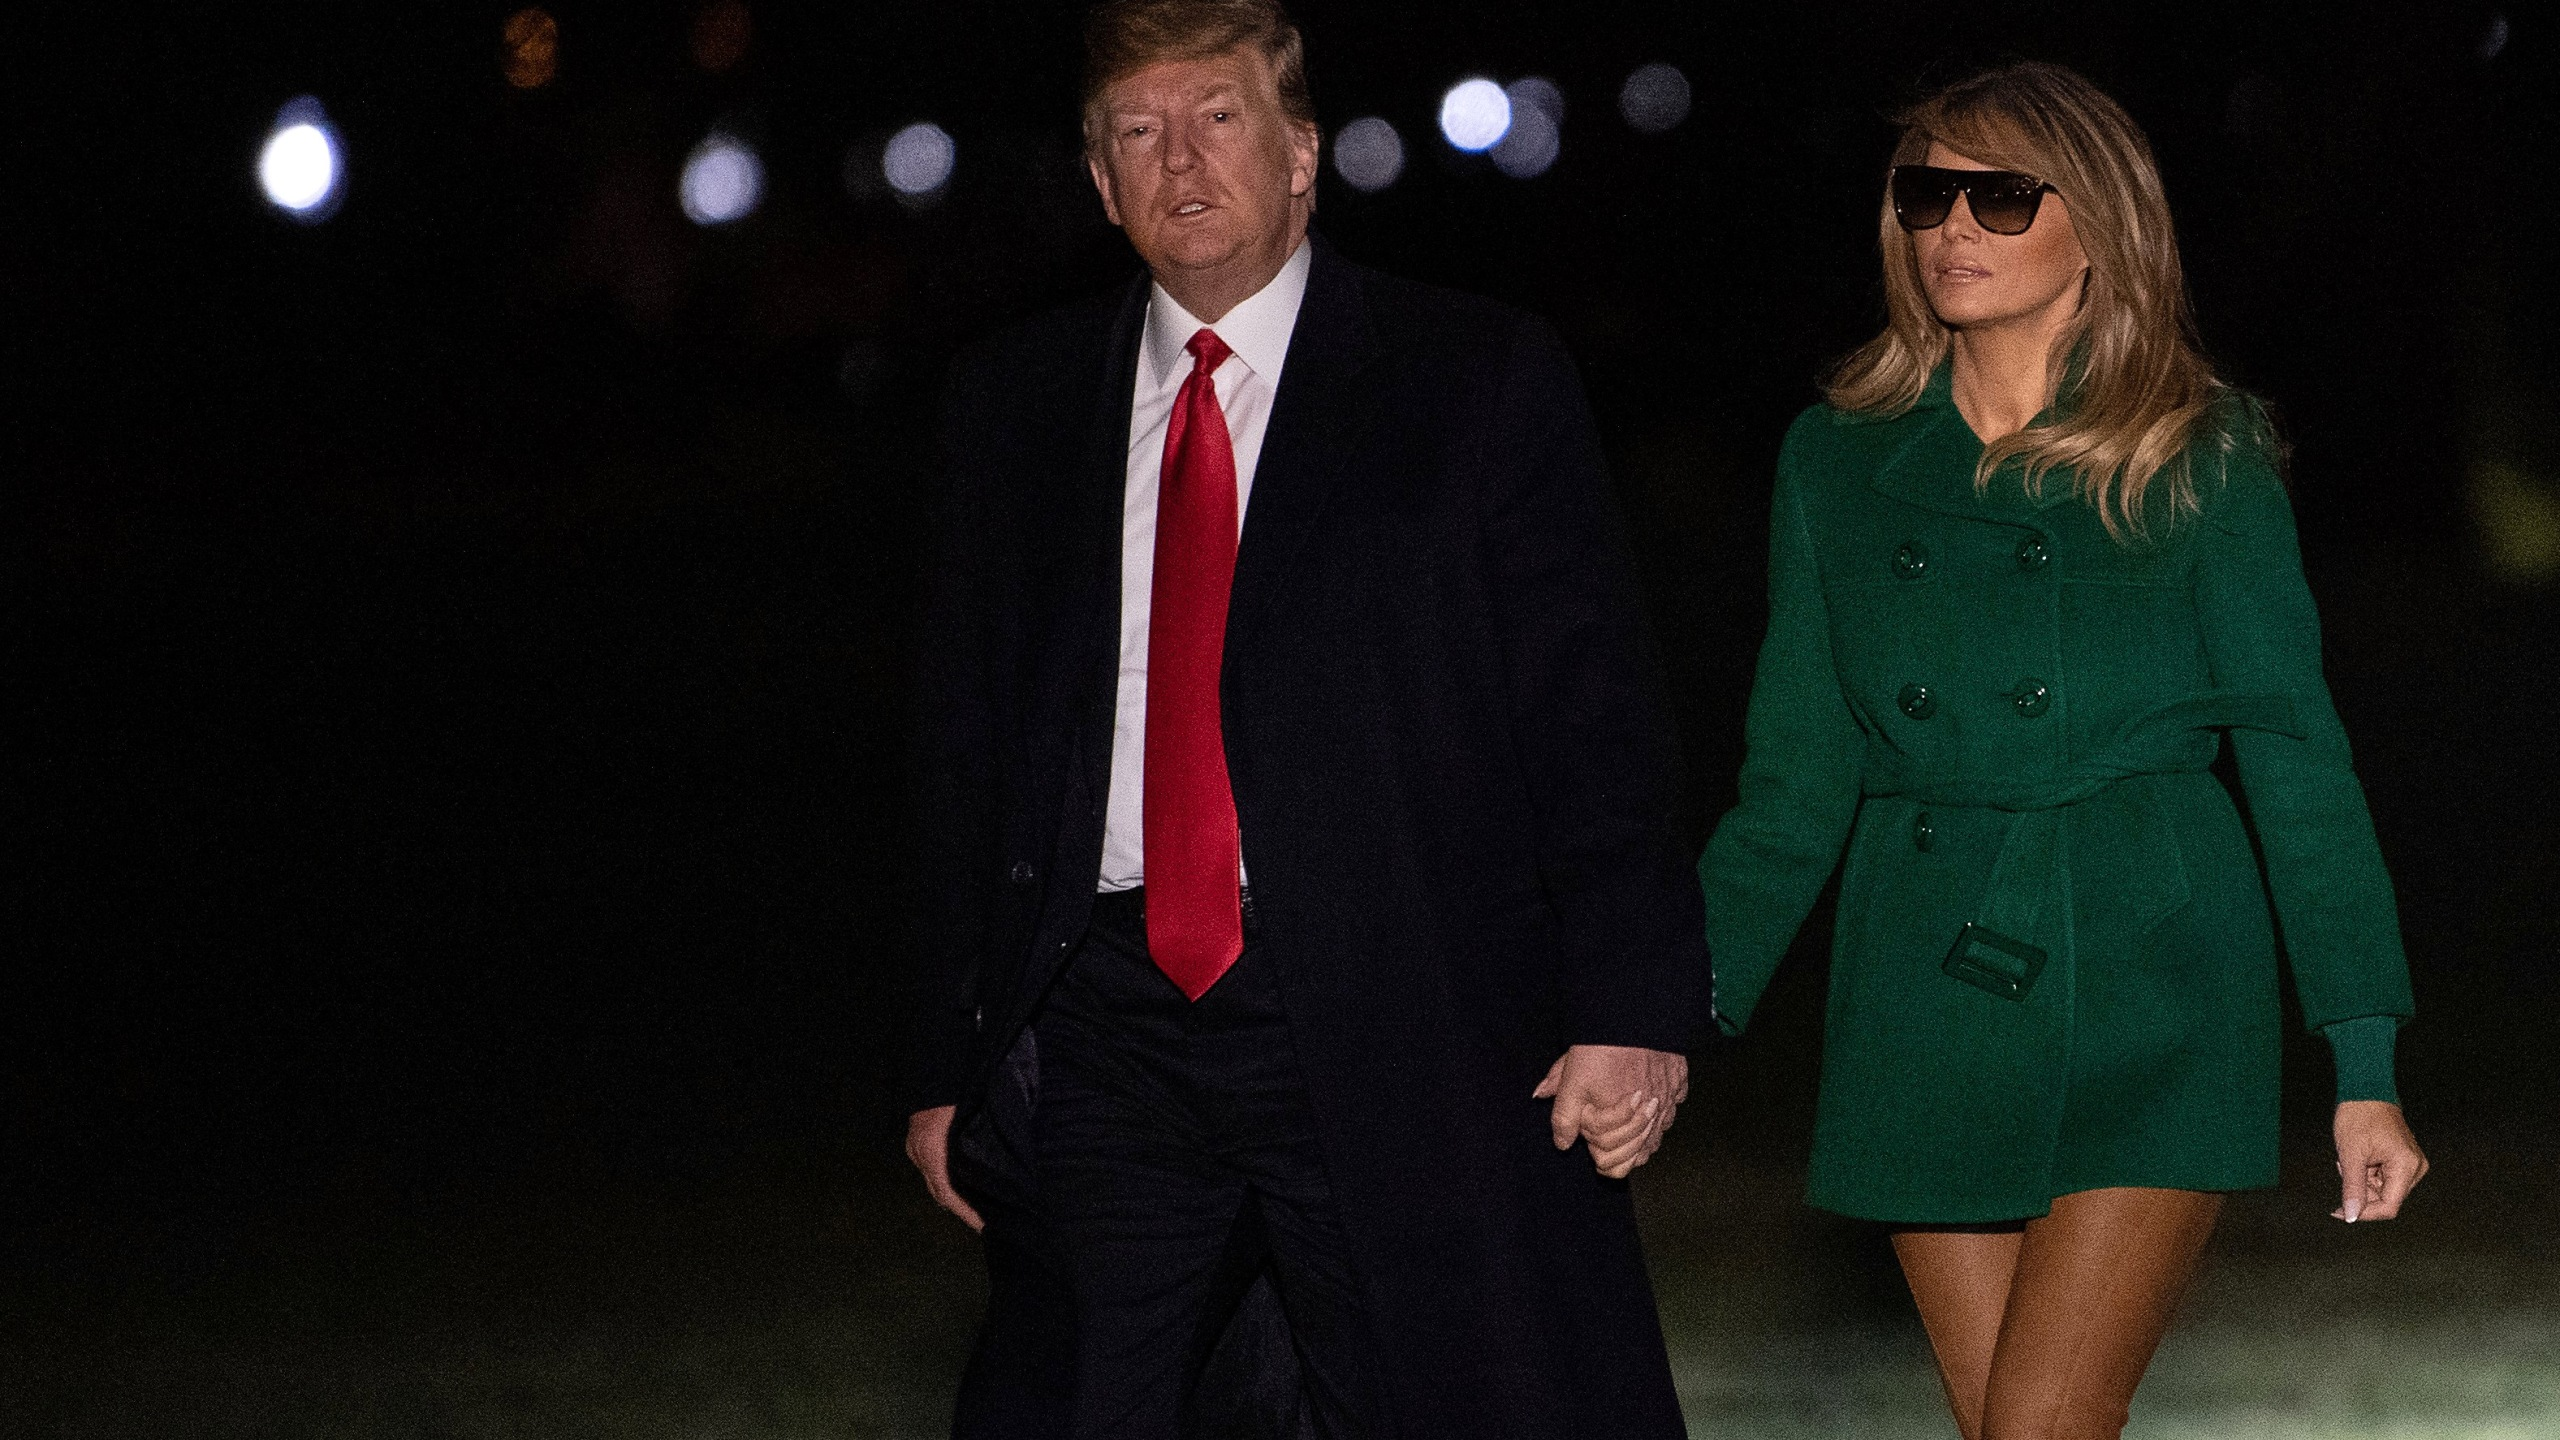 US President Donald Trump and First Lady Melania Trump arrive at the White House in Washington, DC, on December 27, 2018, as they return from an unannounced trip to Iraq. (Credit: NICHOLAS KAMM/AFP/Getty Images)